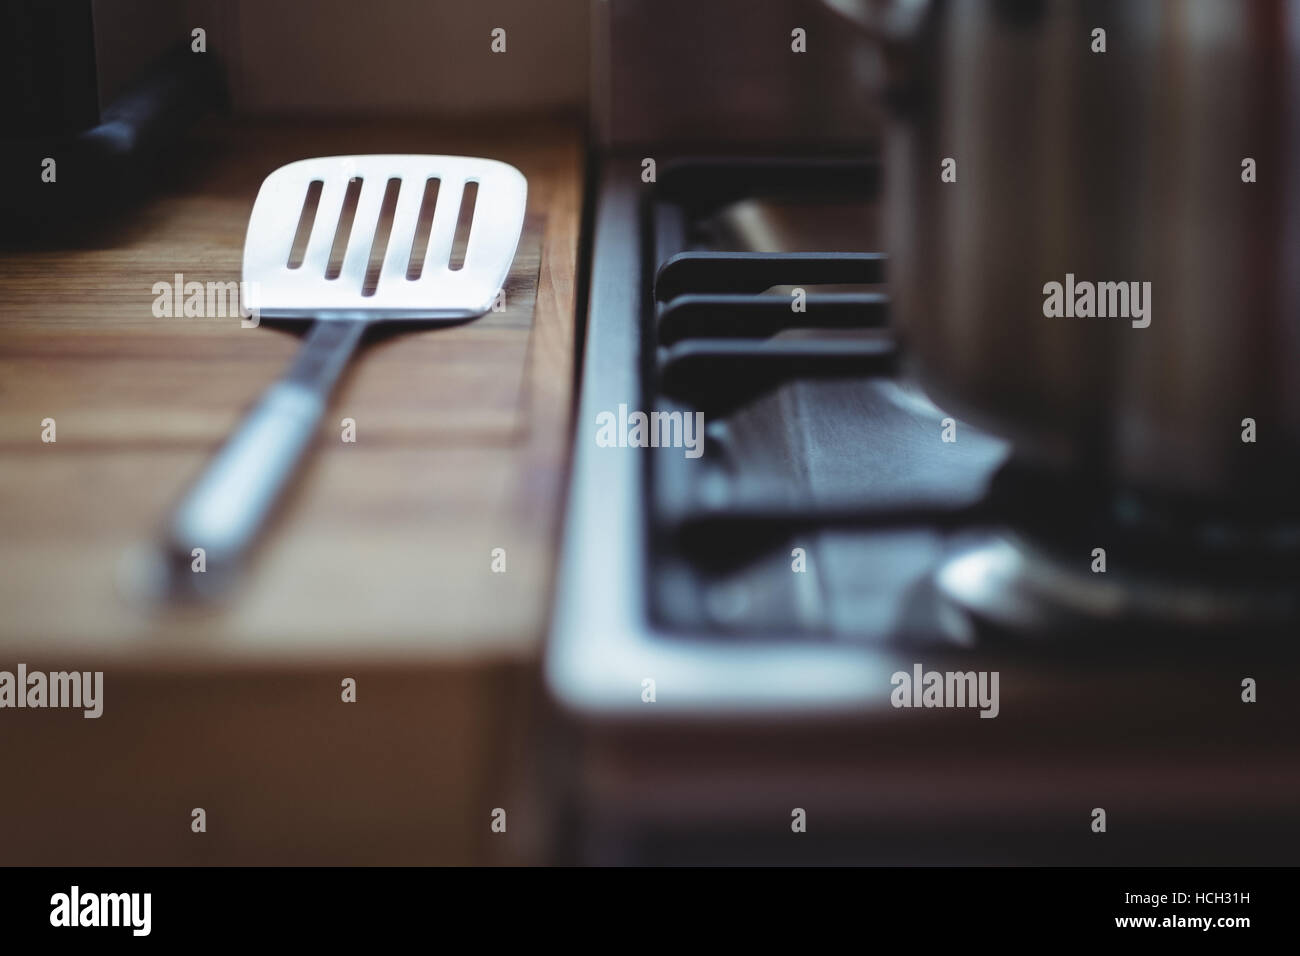 Spatula on wooden table - Stock Image